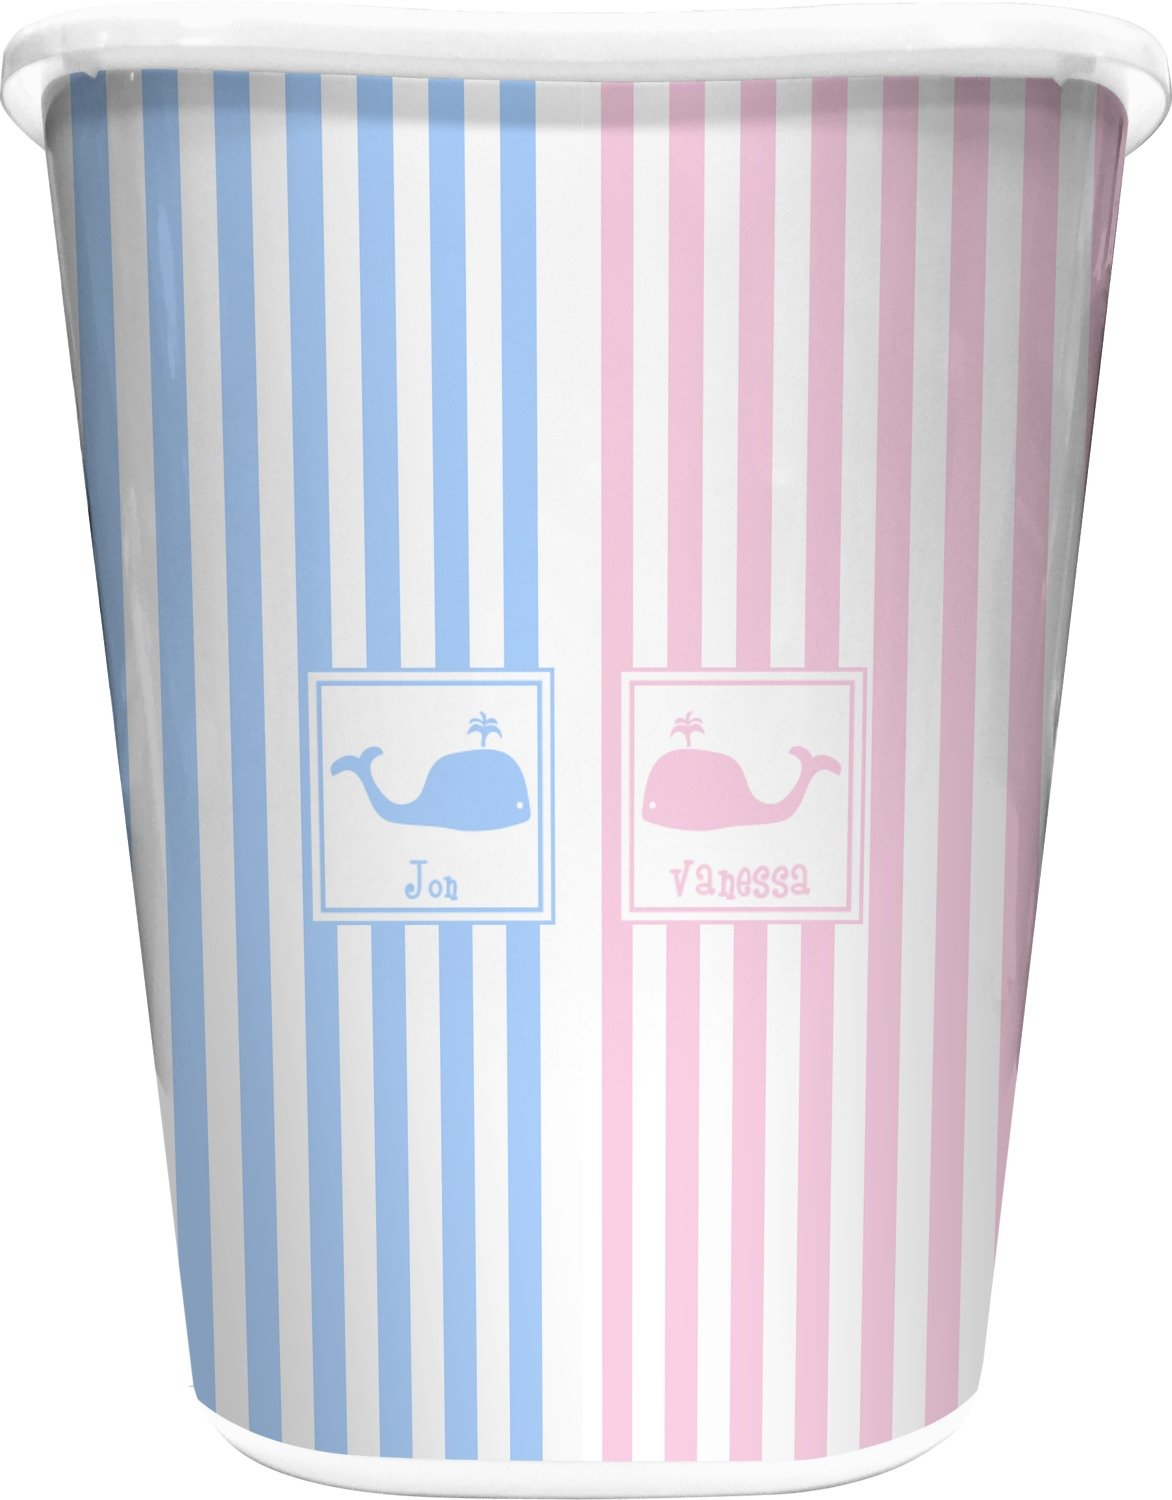 RNK Shops Striped w/Whales Waste Basket - Single Sided (White) (Personalized)